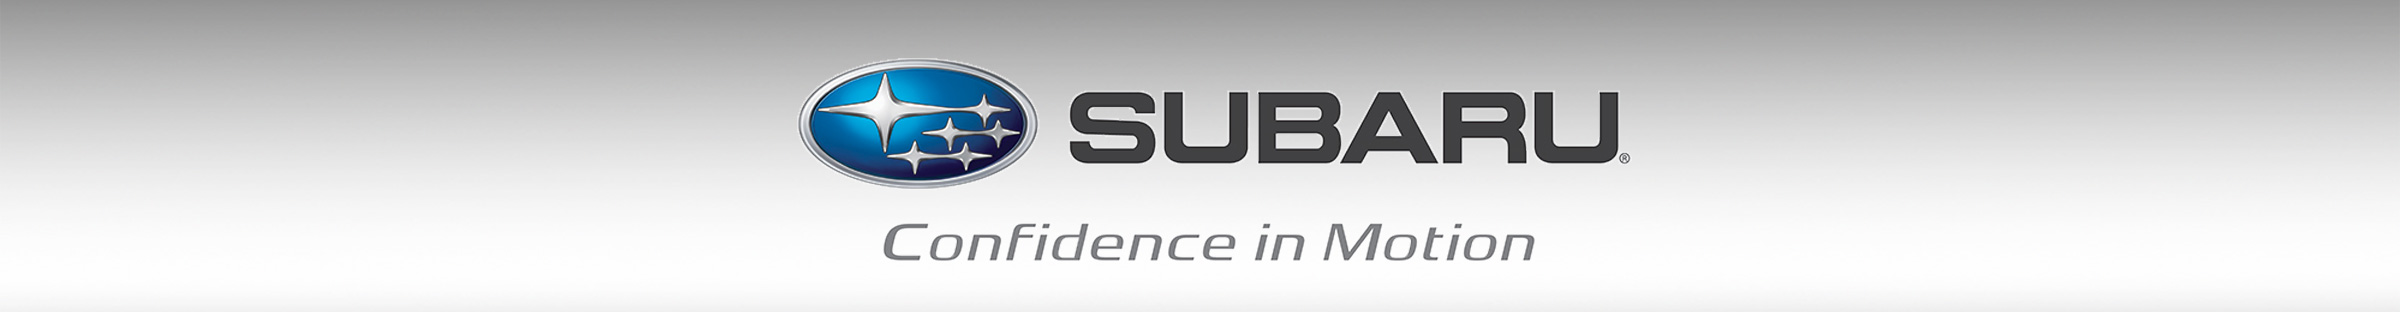 Subaru - Confidence in Motion